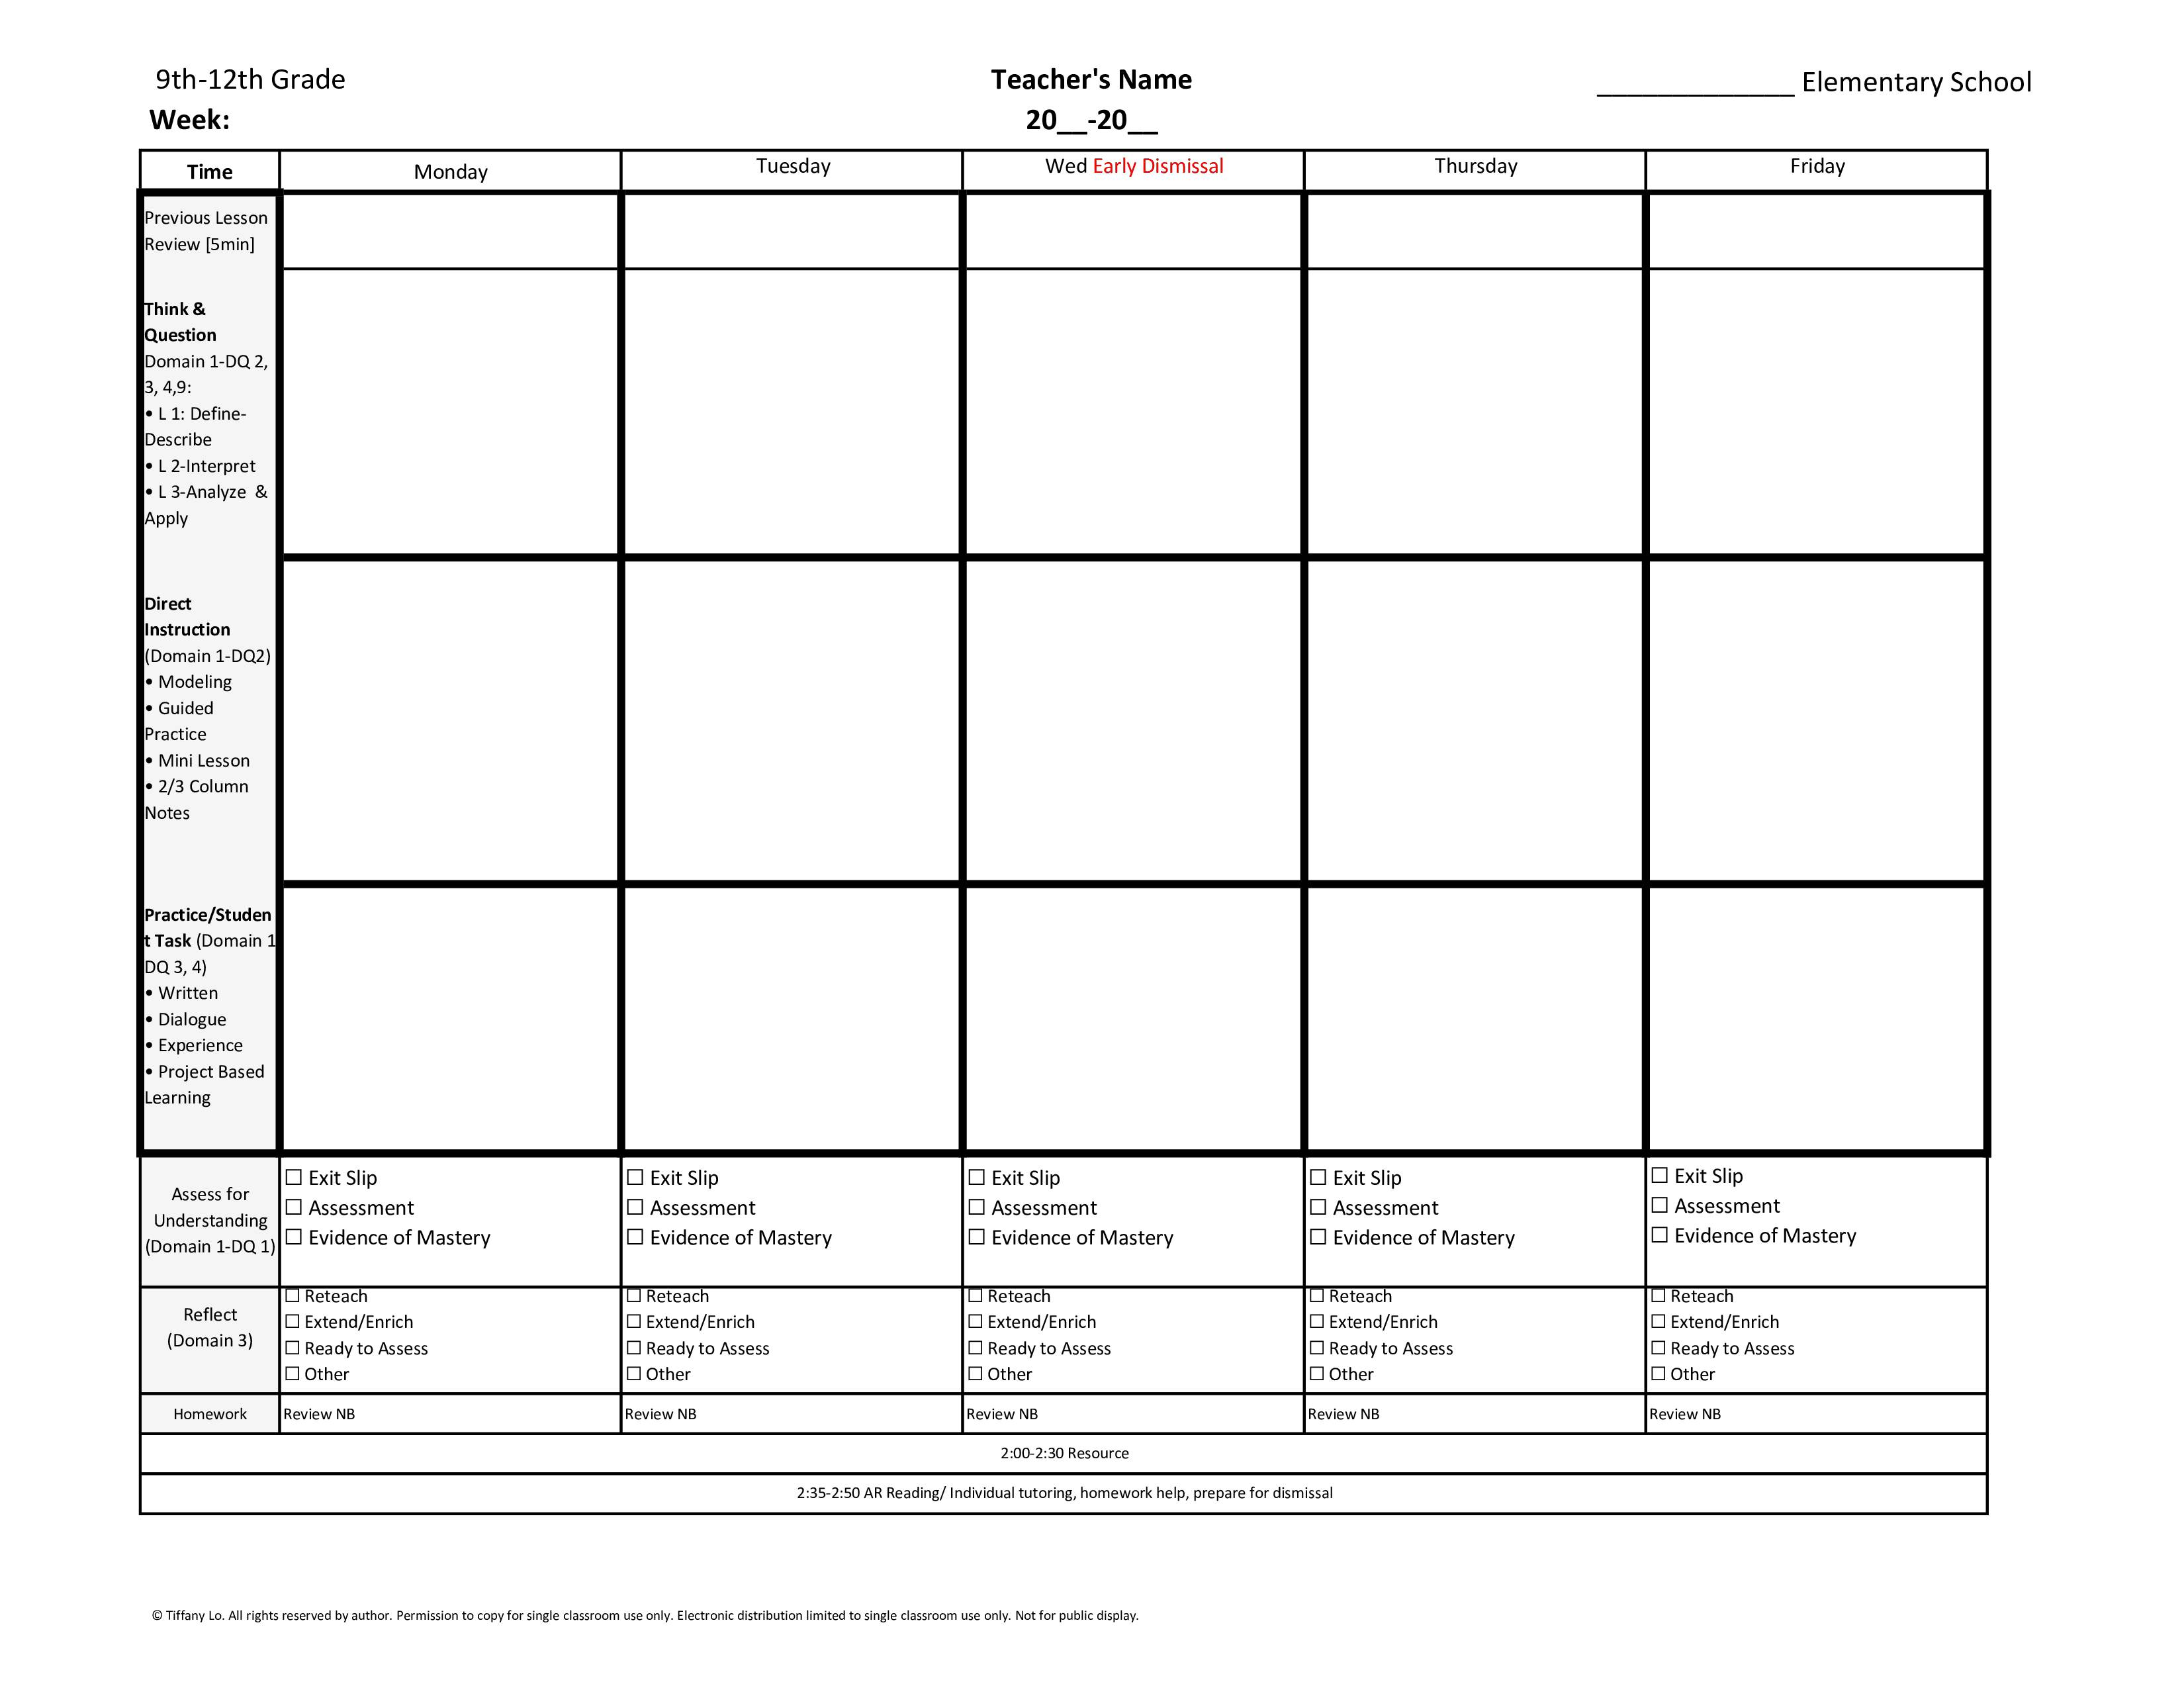 9th 10th 11th 12th Grade Weekly Lesson Plan Template W